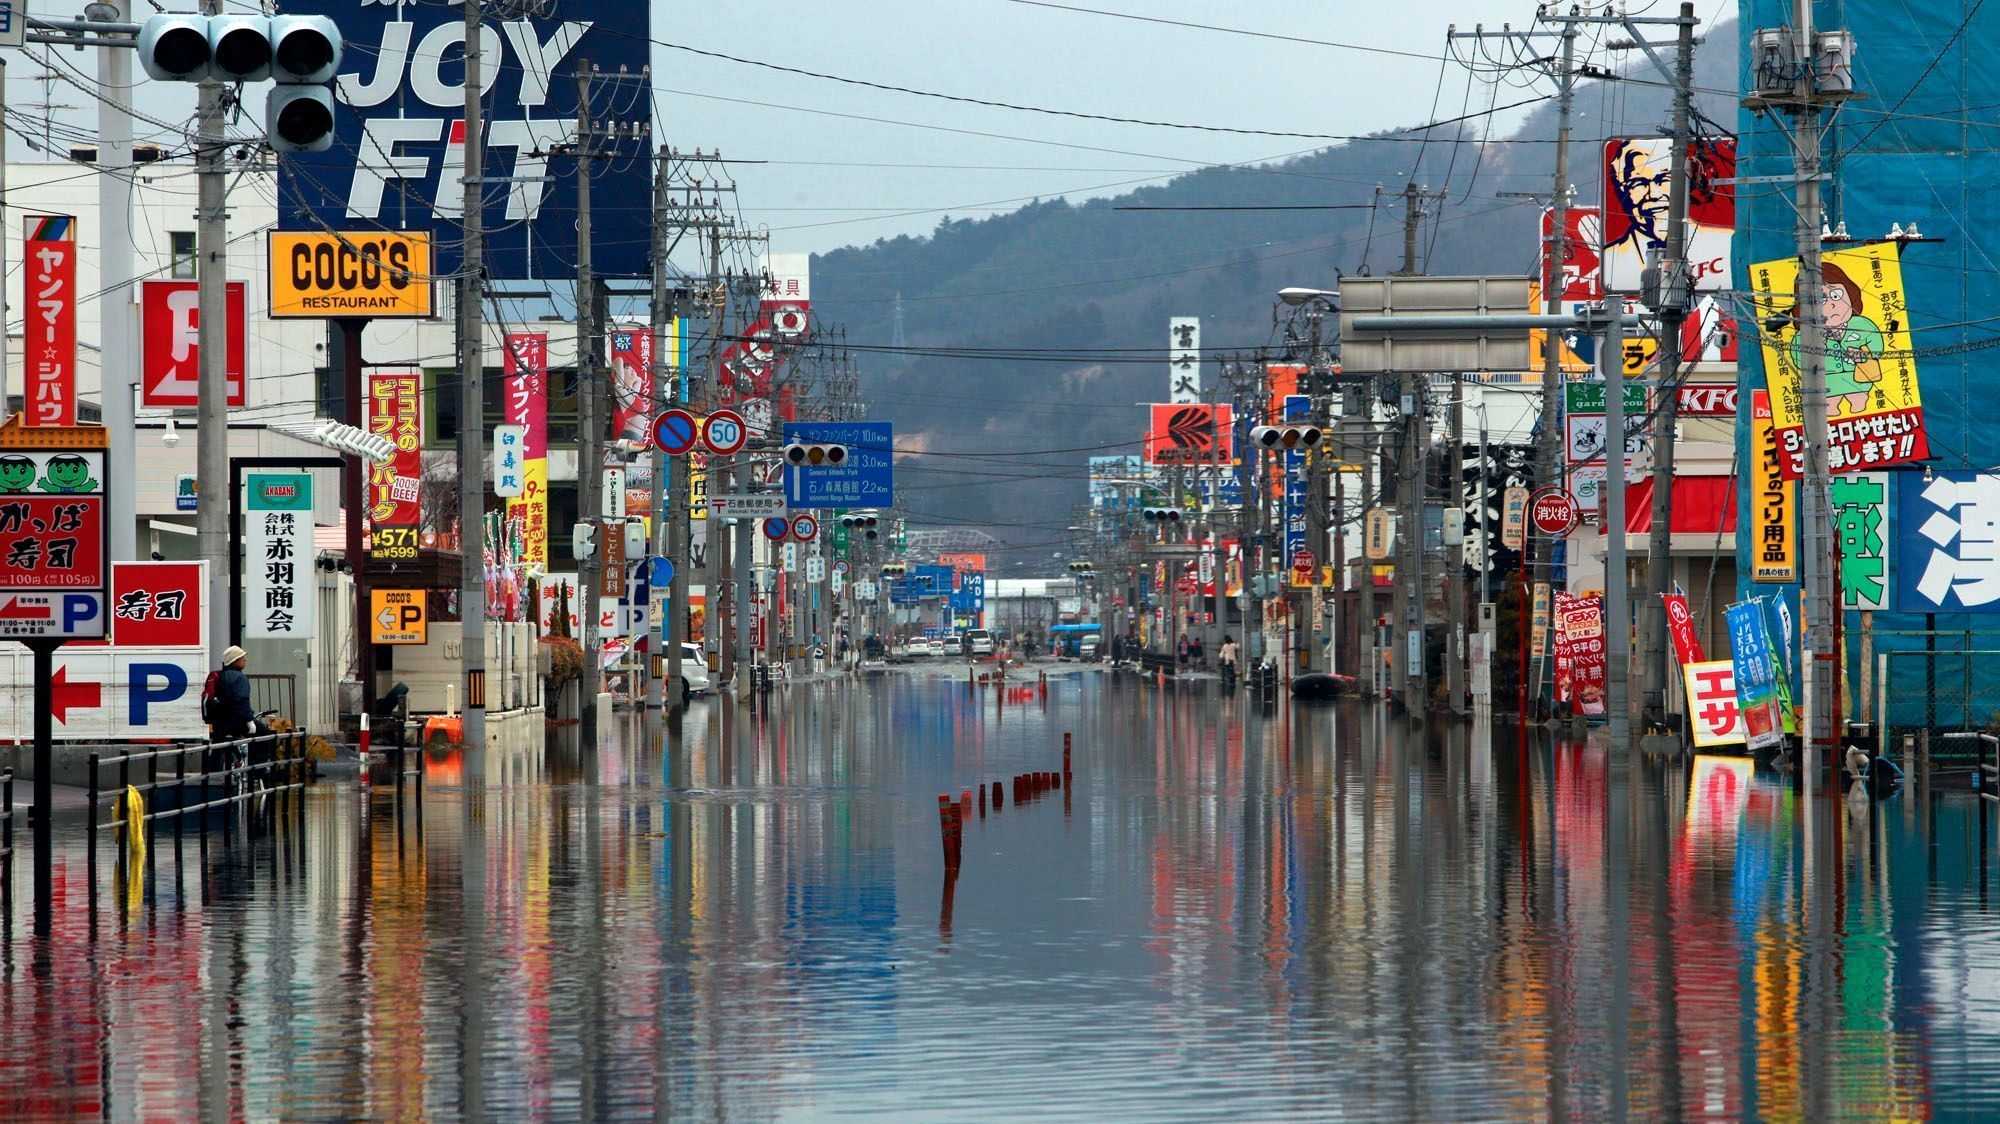 The waters of the tsunami were still evident in the Japanese town of Ishinomaki days after the March 11, 2011 tsunami.